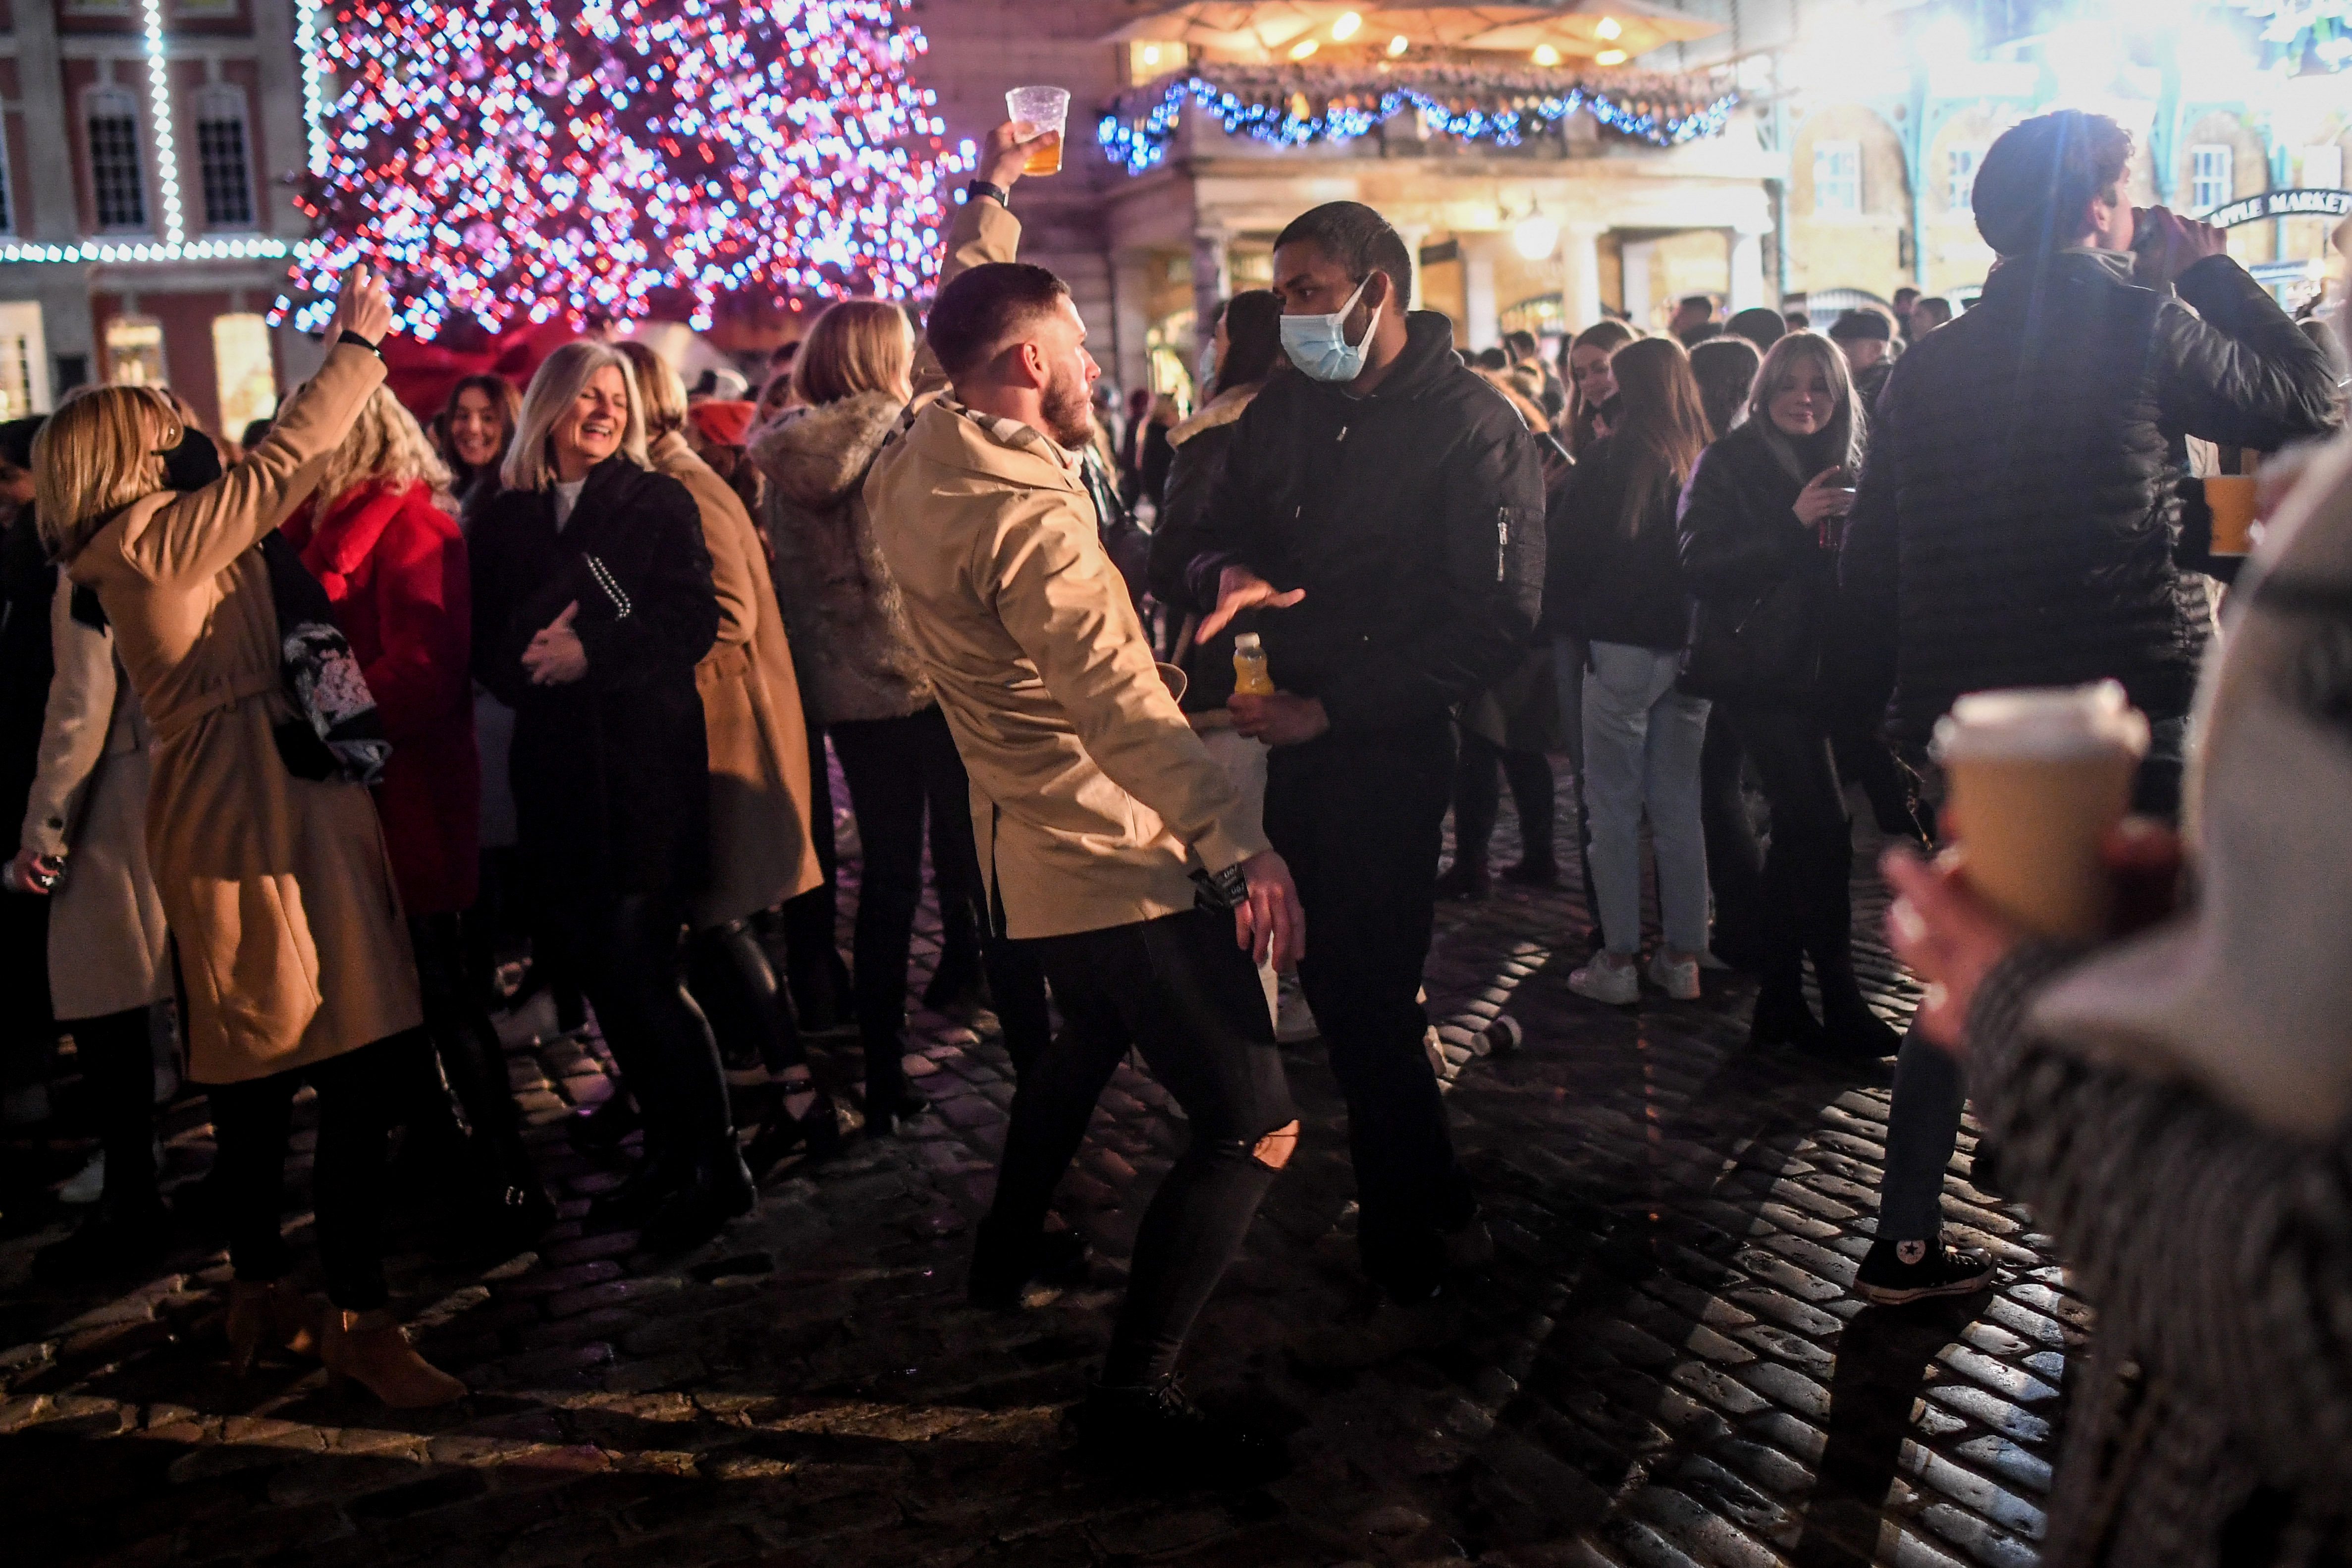 LONDON, ENGLAND  - DECEMBER 05: A man not wearing a mask dances in front of a man wearing a mask in Covent Garden on December 5, 2020 in London, England. On Tuesday night, Dec 1, MPs voted in favour of government proposals to enter England into a tiered system of lockdown beginning at midnight. Residents of Tier Two - High Alert can socialise with anyone they live with or who is in their support bubble in any indoor setting, whether at home or in a public place. Outdoors they must observe the rule of six. Pubs and bars must close, unless operating as restaurants. Hospitality venues can only serve alcohol with substantial meals and must close between 11pm and 5am with last orders called at 10pm. Organised indoor sport, physical activity and exercise classes will be permitted if it is possible for people to avoid mixing with people they do not live with. Schools remain open. (Photo by Peter Summers/Getty Images)